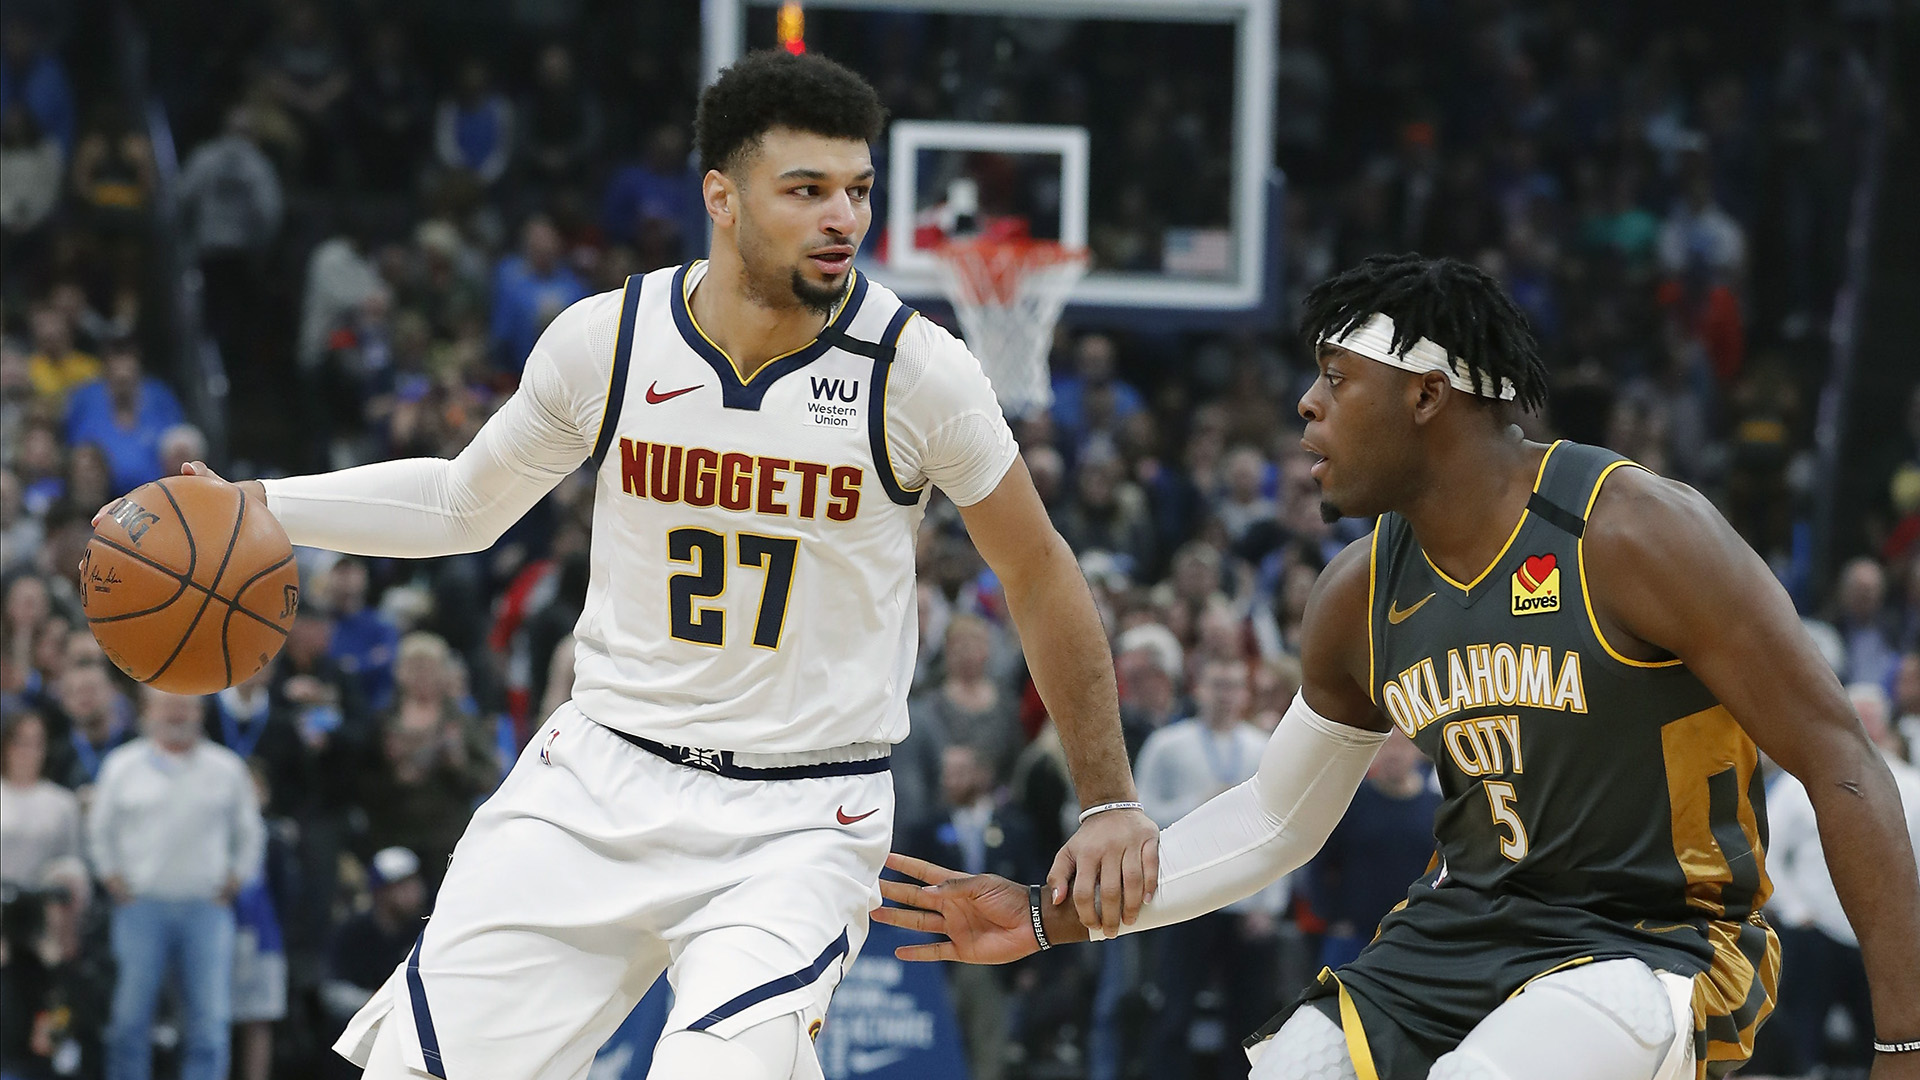 Nuggets Look To Regroup, Face Rested Thunder